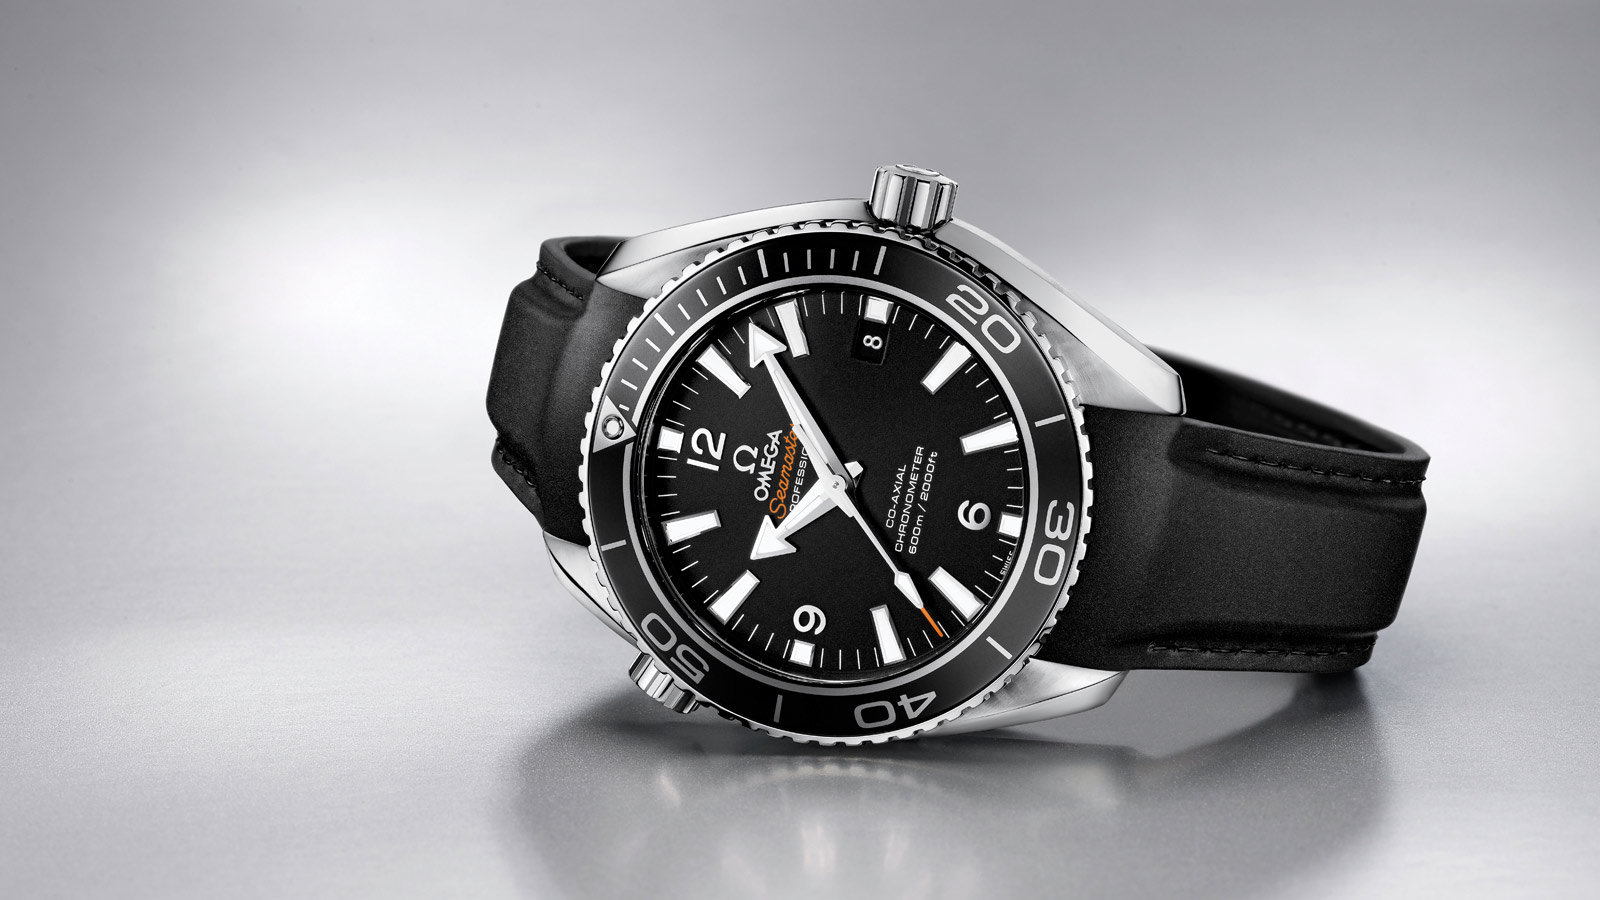 Seamaster Planet Ocean 600M Planet Ocean 600M Omega Co‑Axial 42 mm - 232.32.42.21.01.003 - View 1